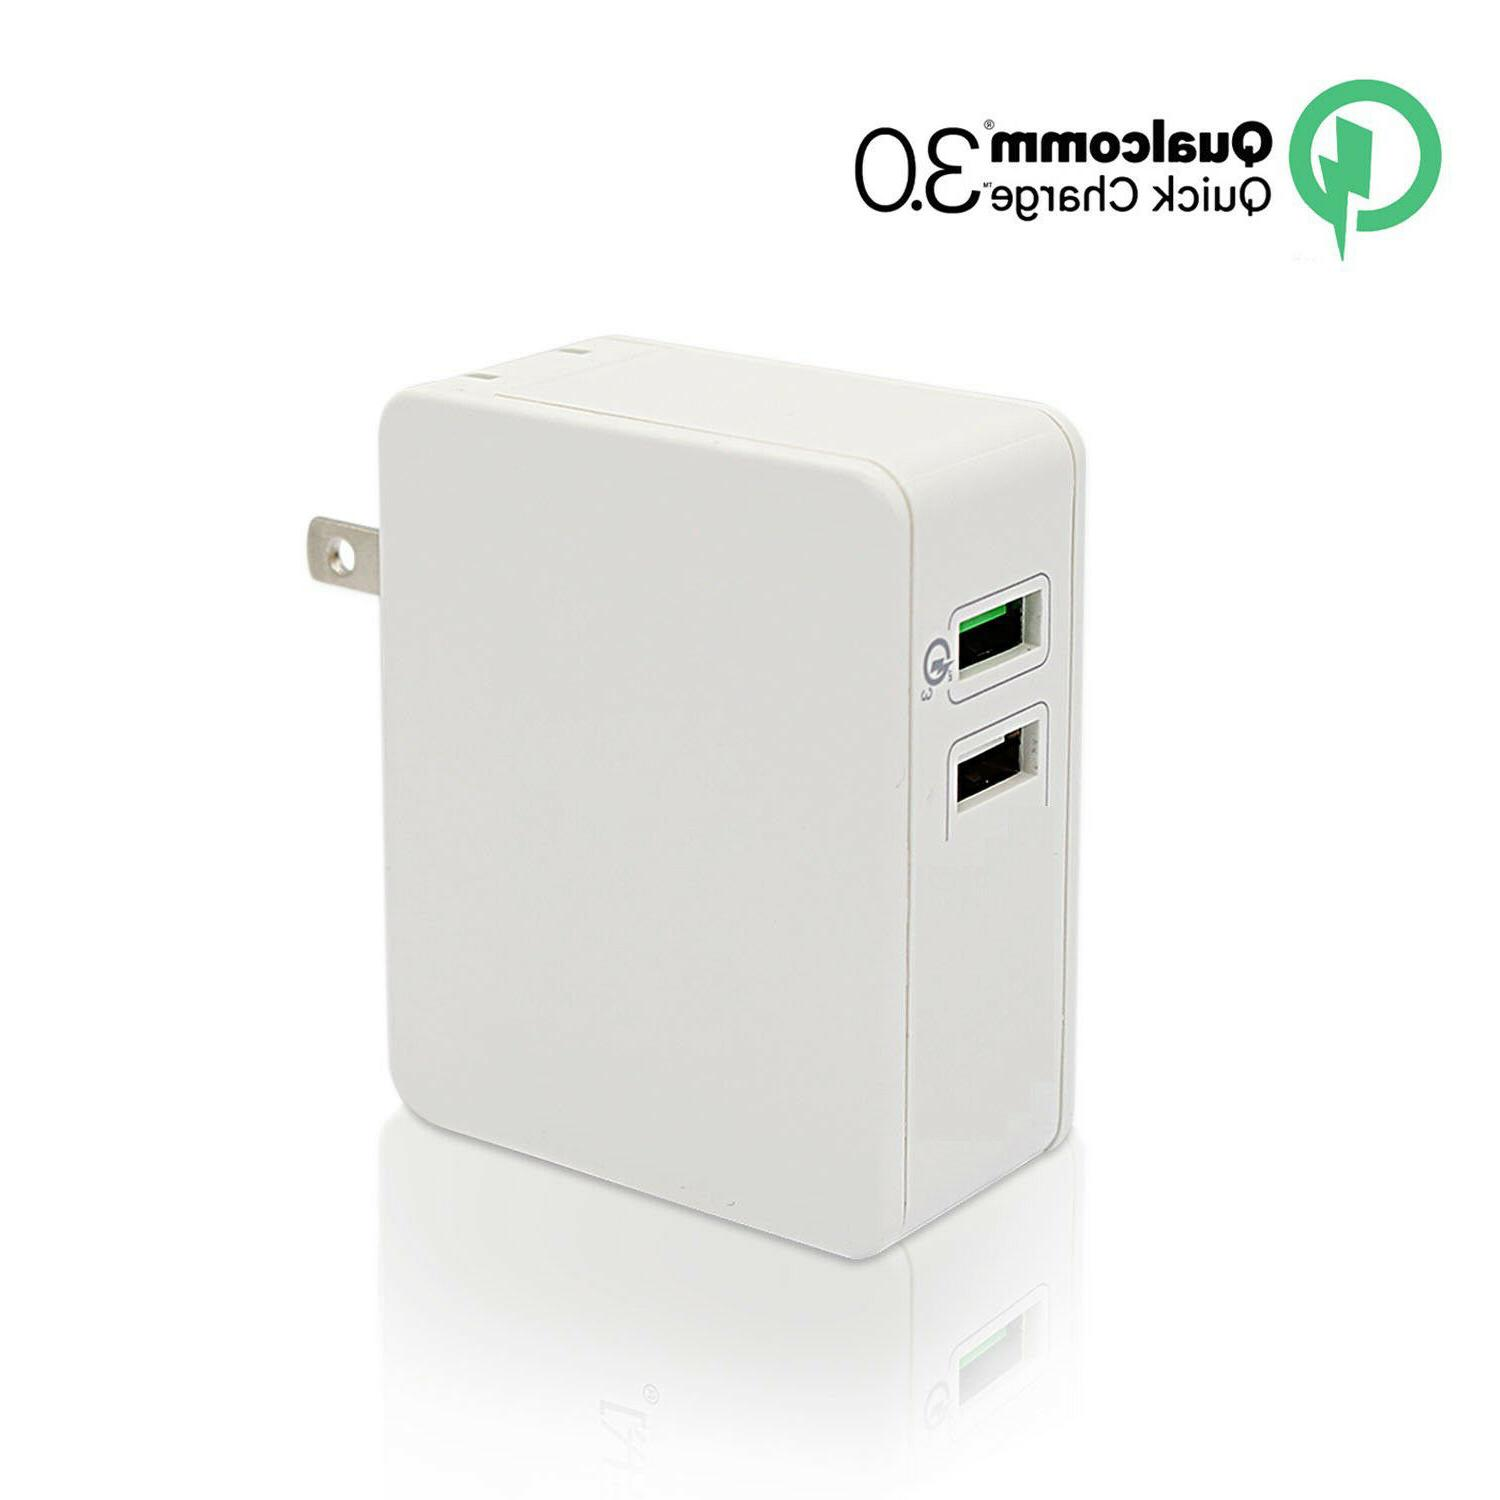 Turbo Port Quick Charge Fast Rapid Wall Qualcomm Certified